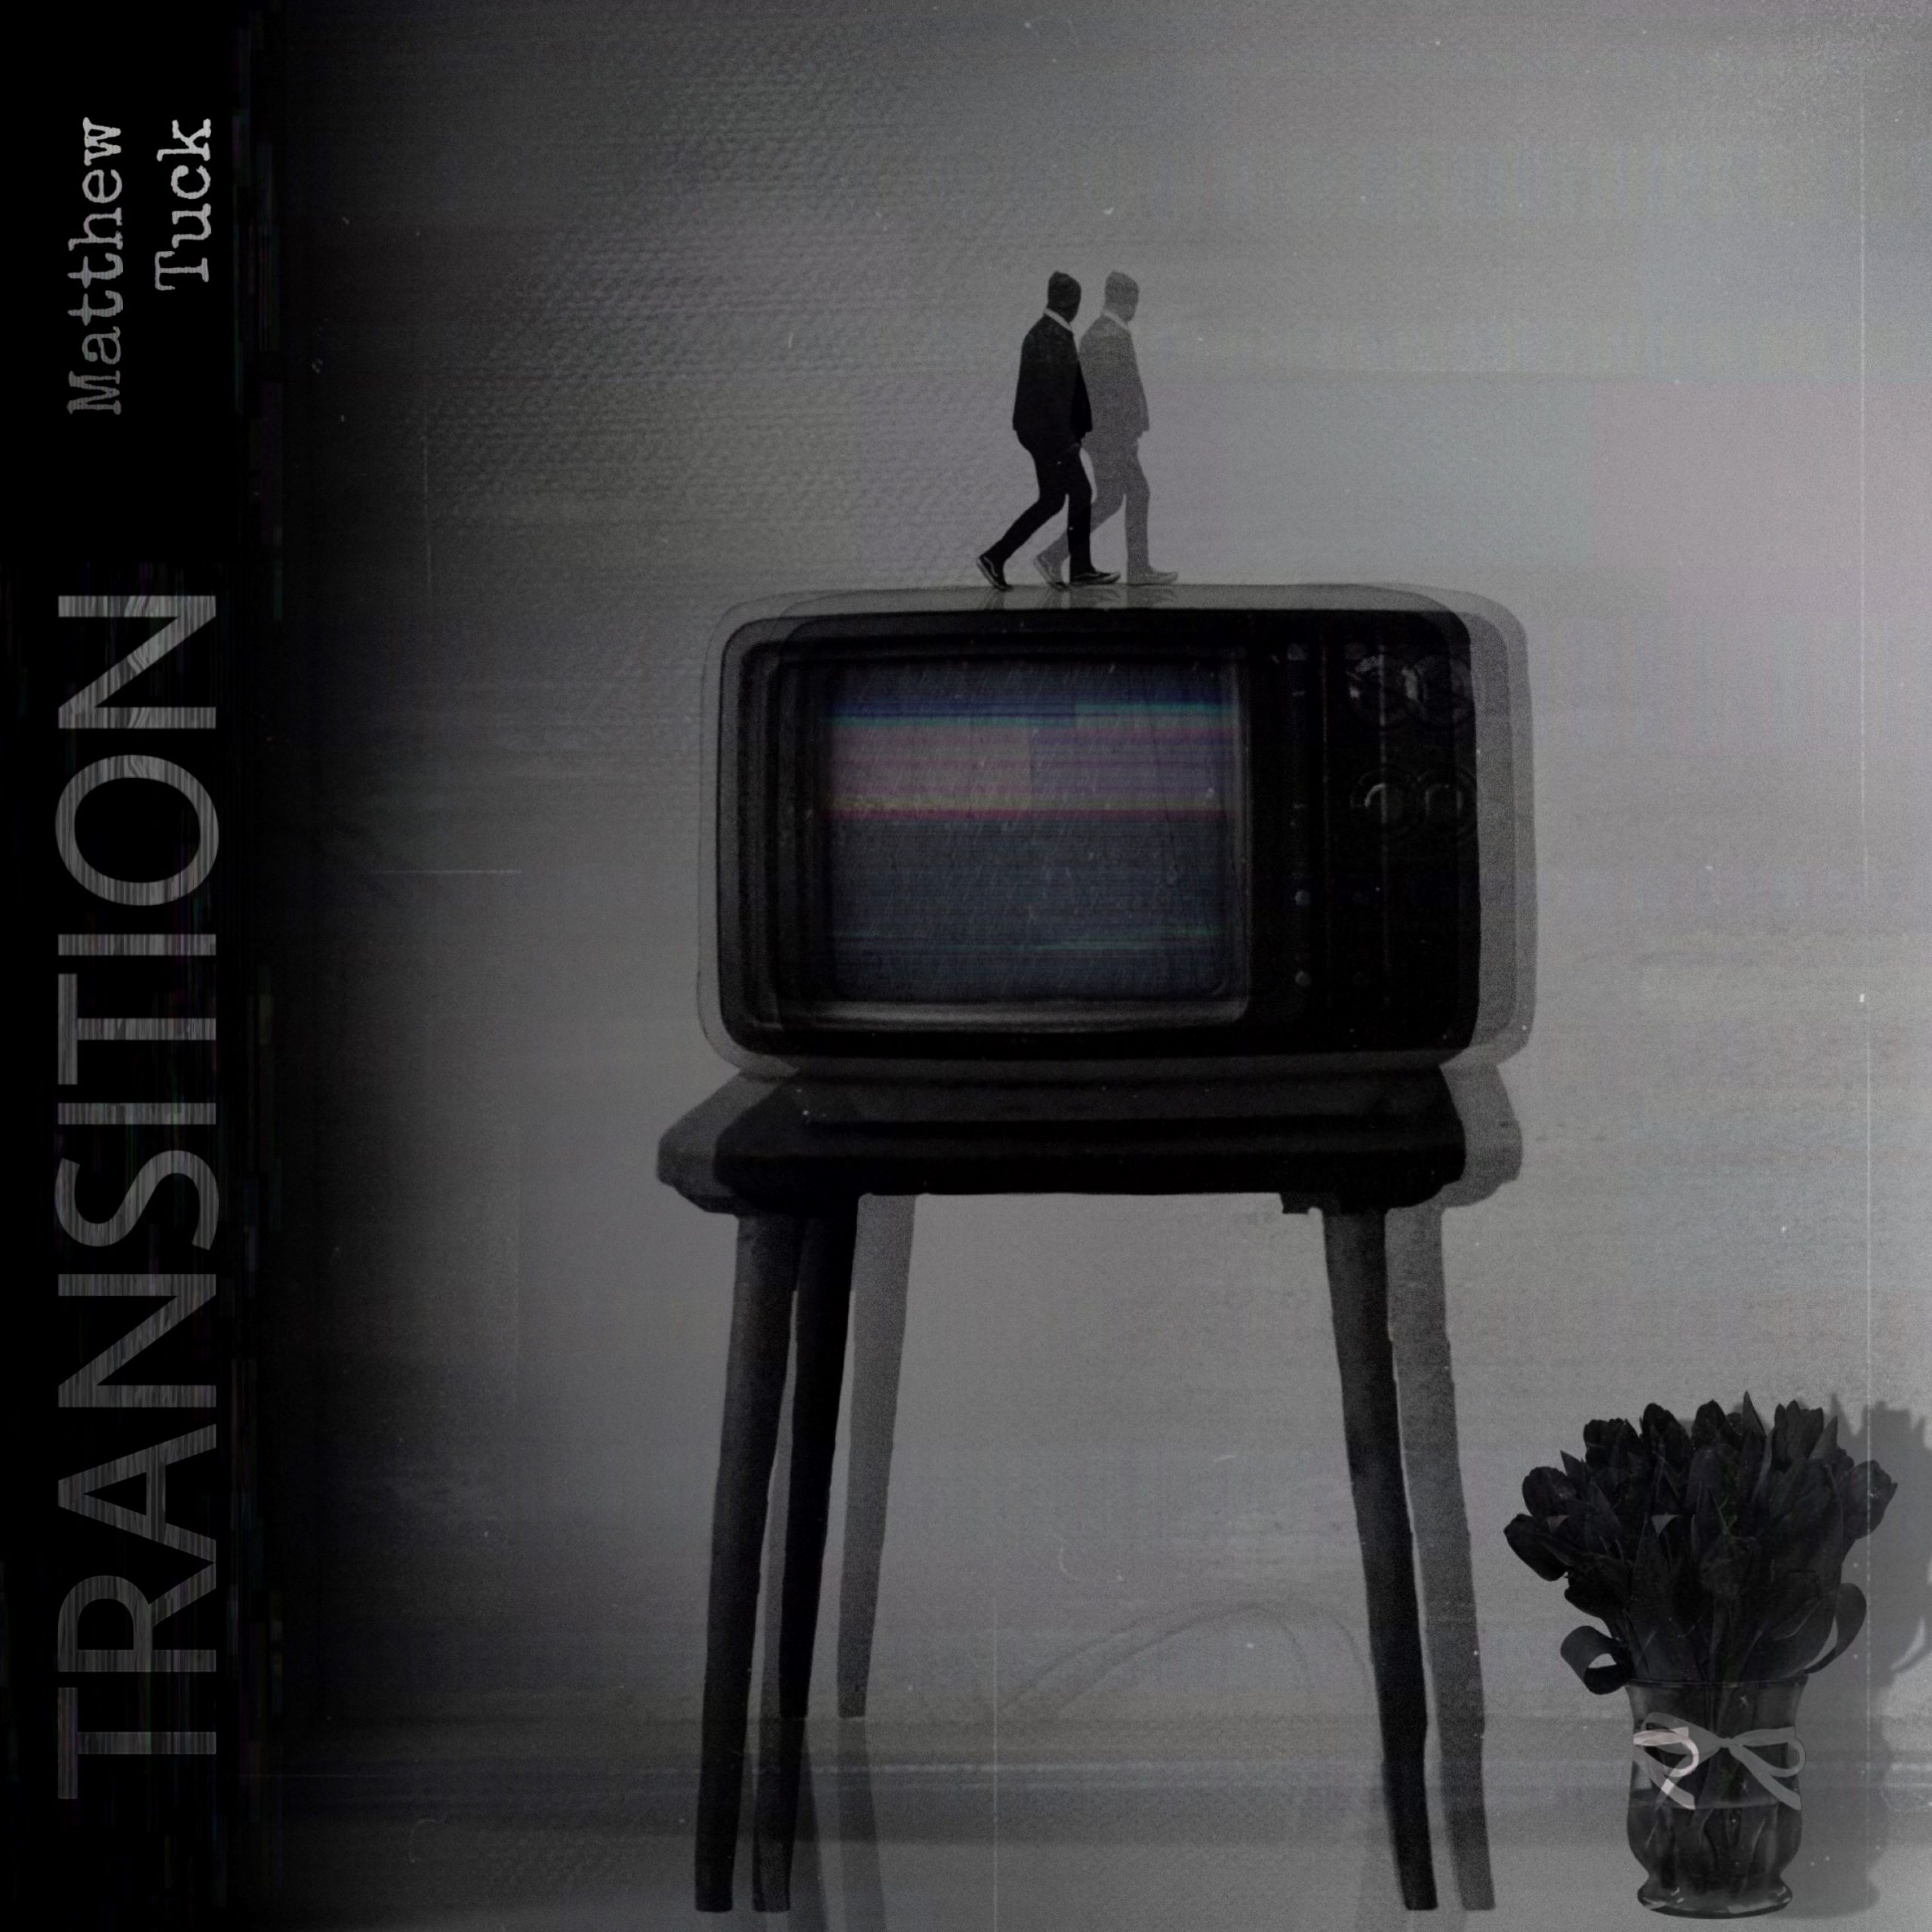 matthew-tuck-transition-album